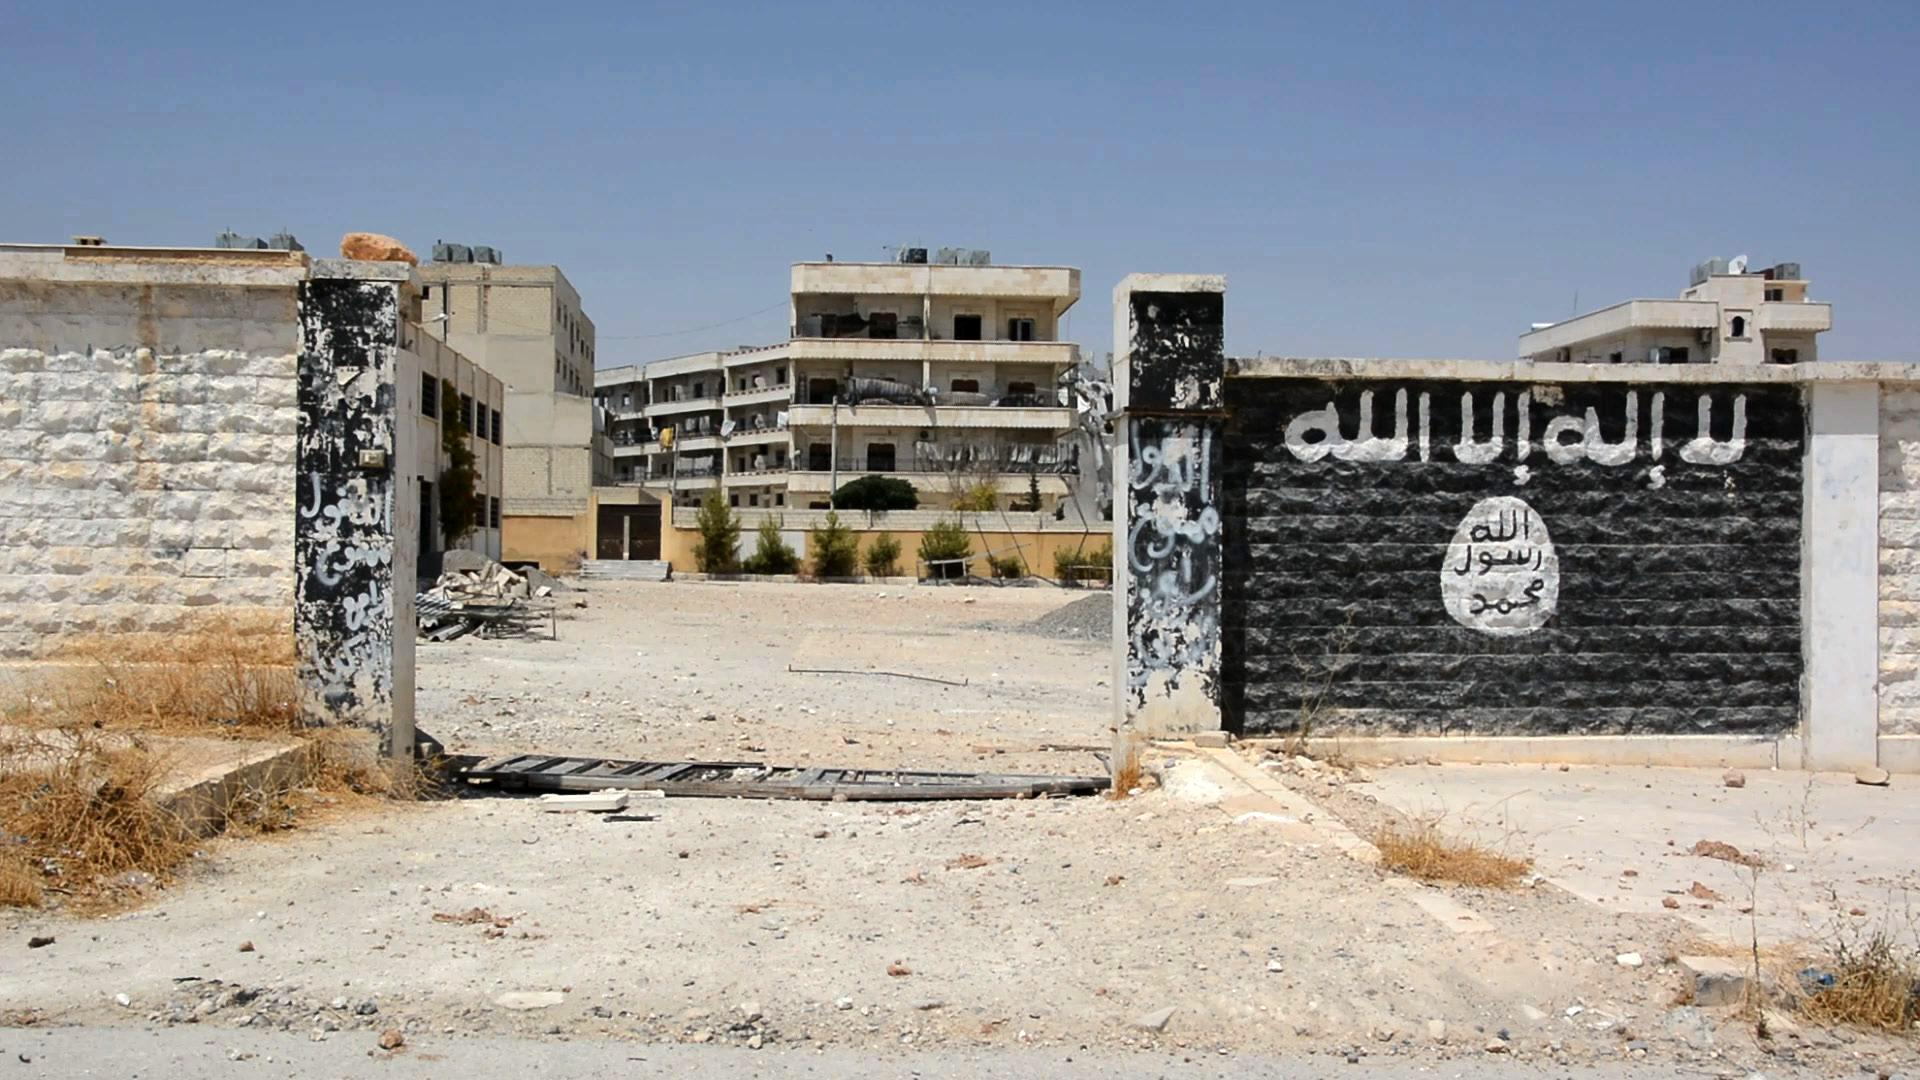 An image grab taken from an AFP video dated August 12 shows a school that was used by ISIS fighters to manufacture explosives in the northern Syrian town of Manbij, almost a week after the Syrian Democratic Forces (SDF), a coalition of Arab and Kurd fighters, seized the group's stronghold.